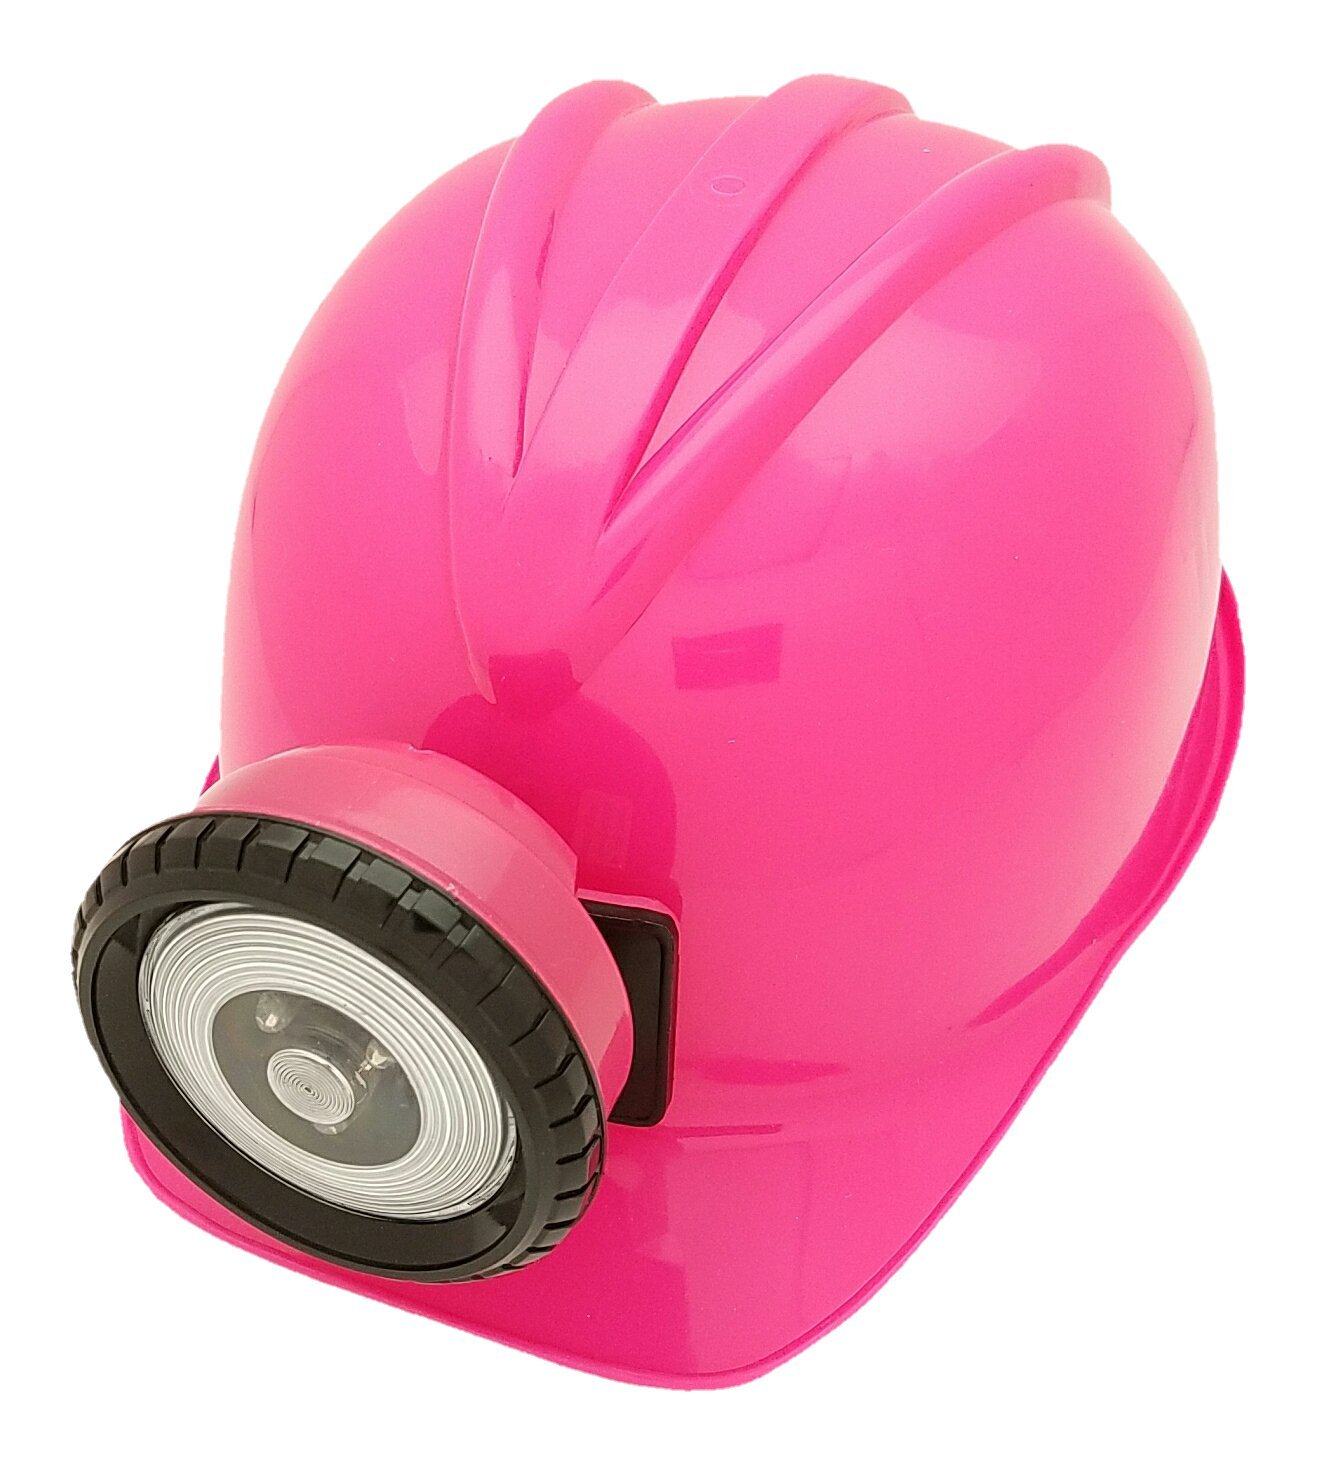 | Fully Adjustable Toy Hard Hats for Any Age Available in 6 Vivid Colors Squire Boone Village . batteries included Verisea PINK Explorer Miner Helmet with Bright Directional LED Lights